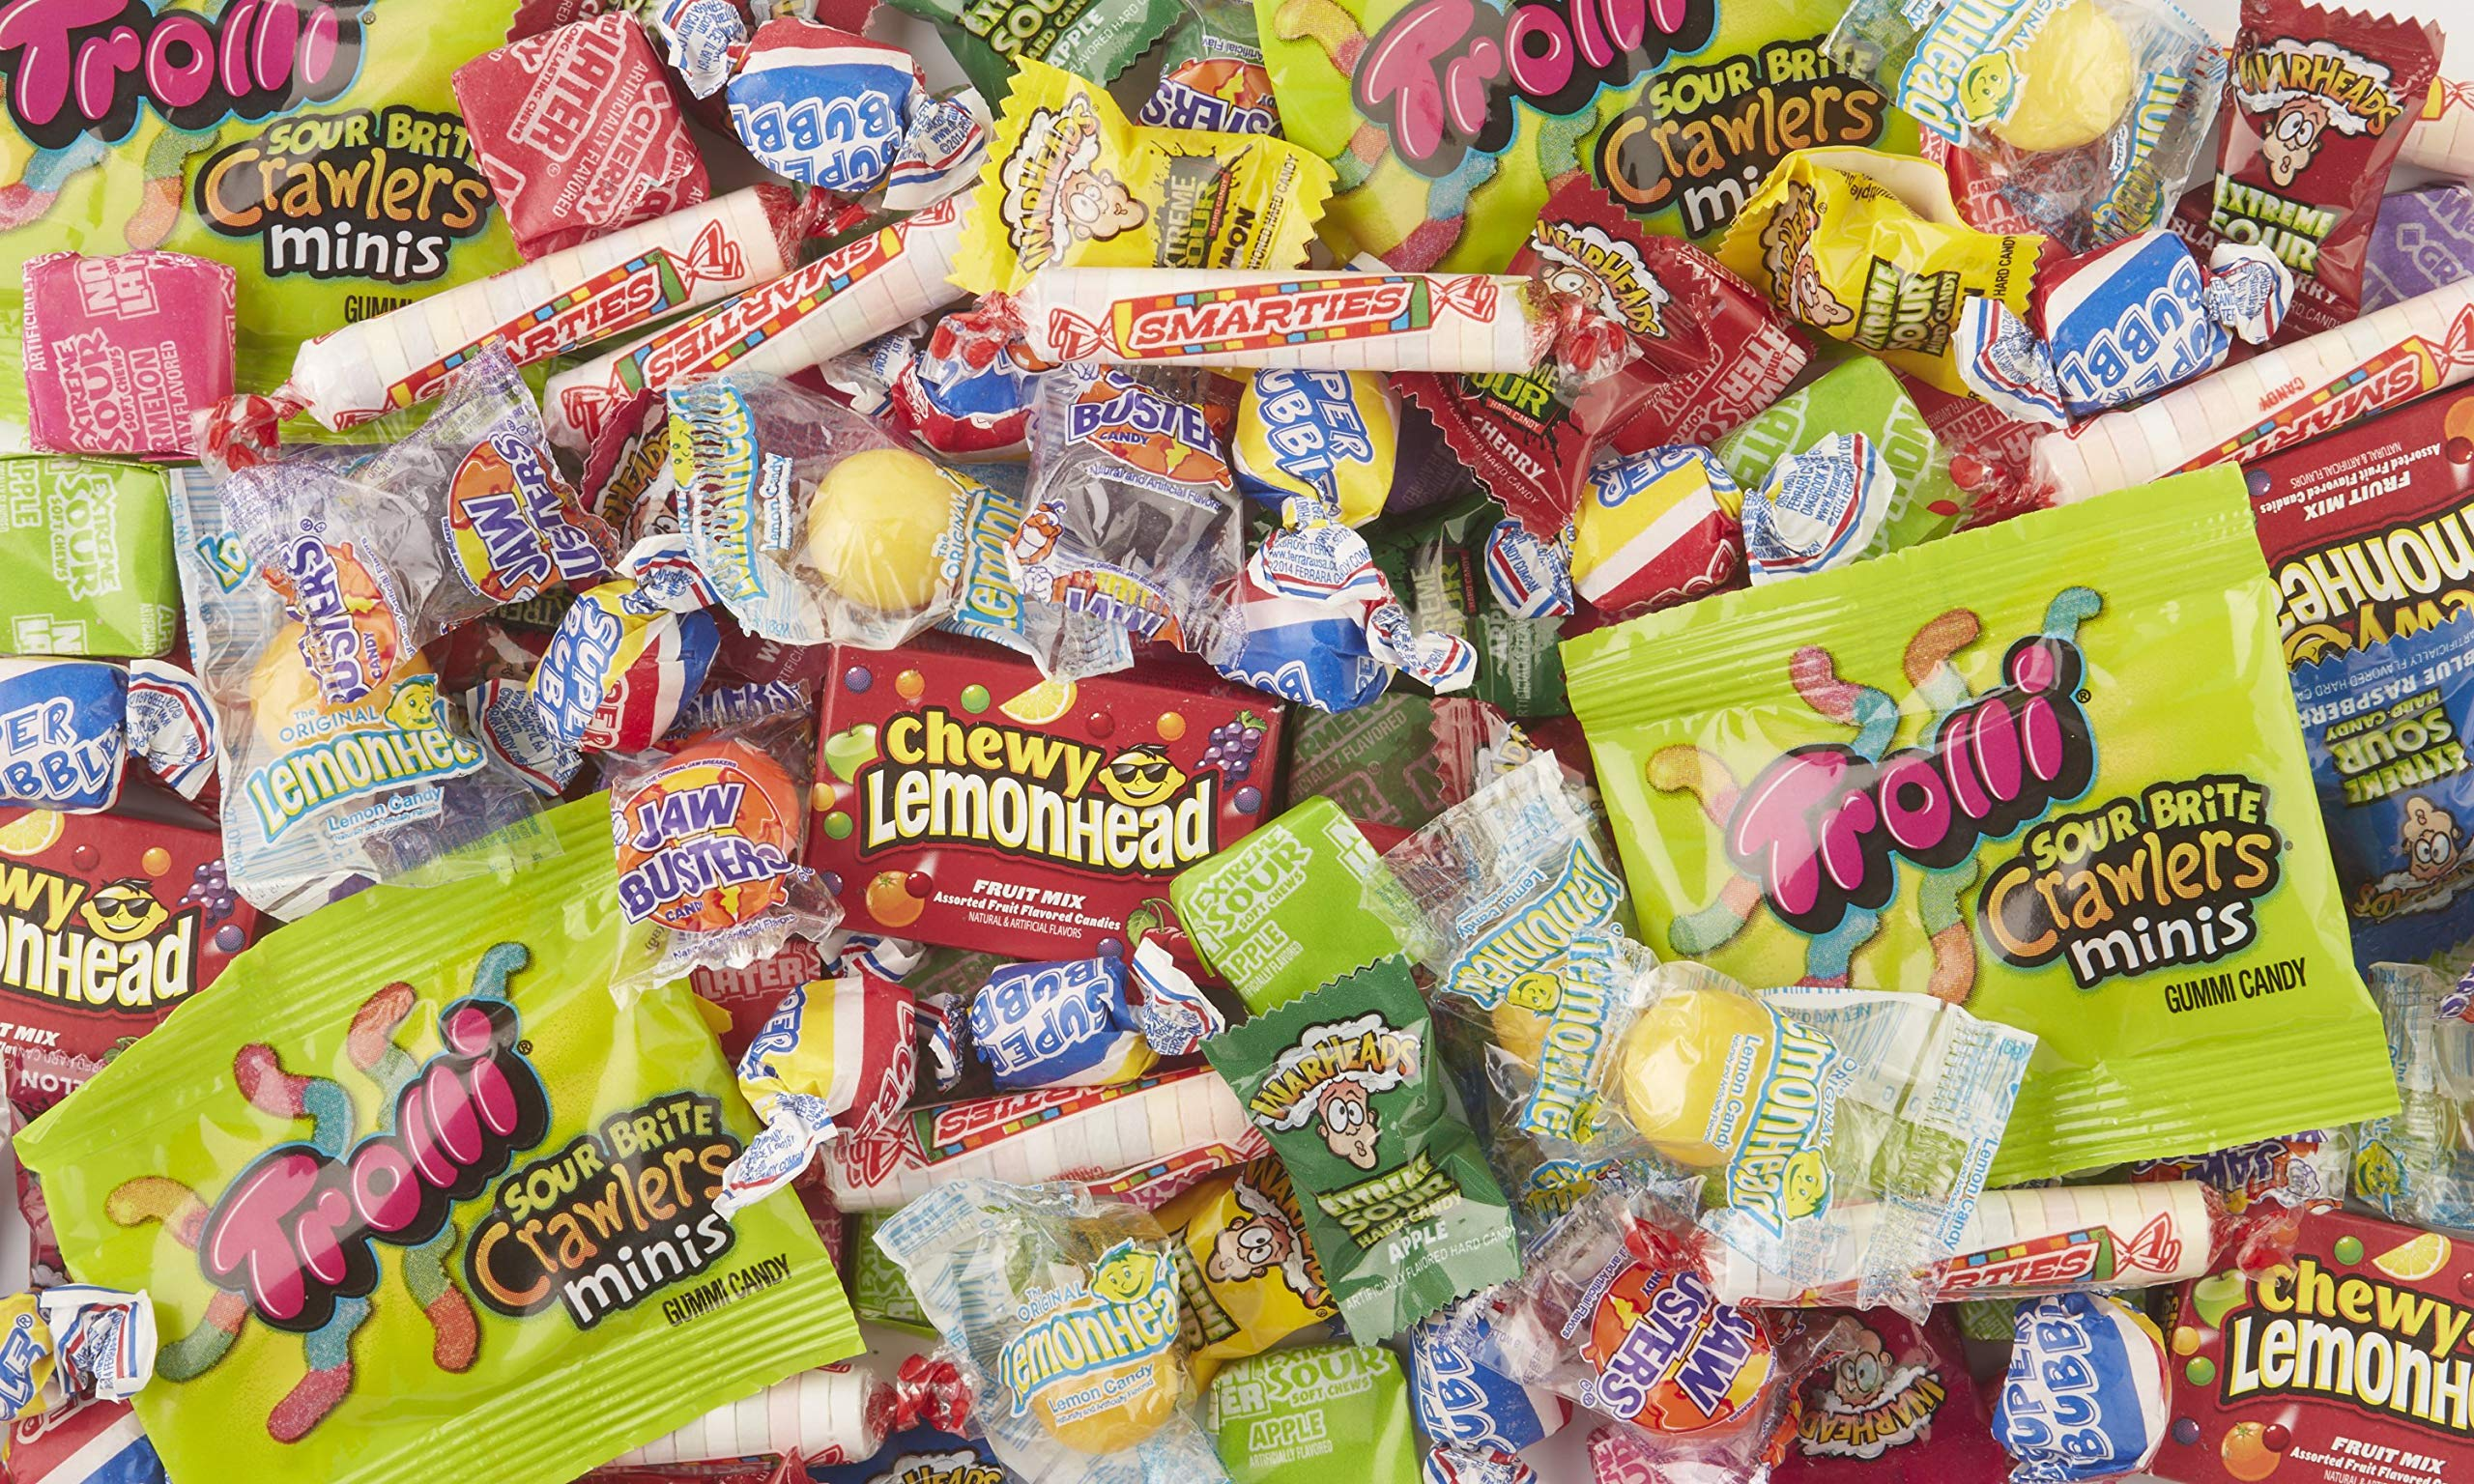 Brach's Sweet & Sour Kiddie Mix Variety Pack Individually Wrapped Candies, 4.36 Pound Bulk Candy Bag